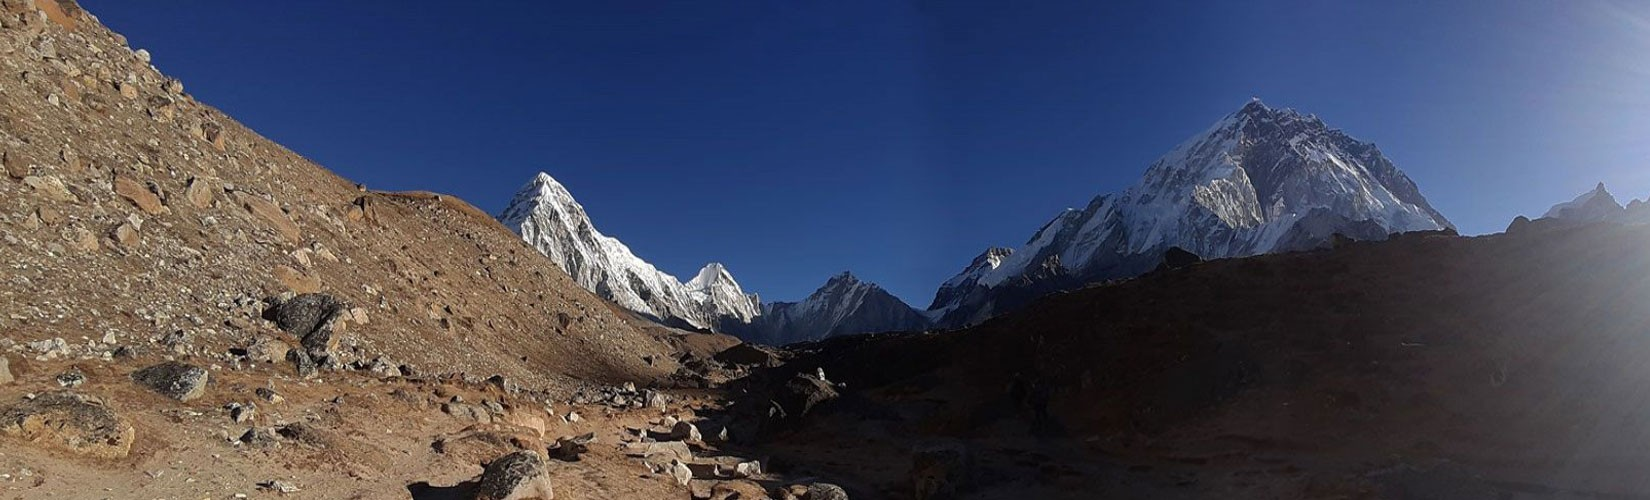 Trekking in Nepal in April